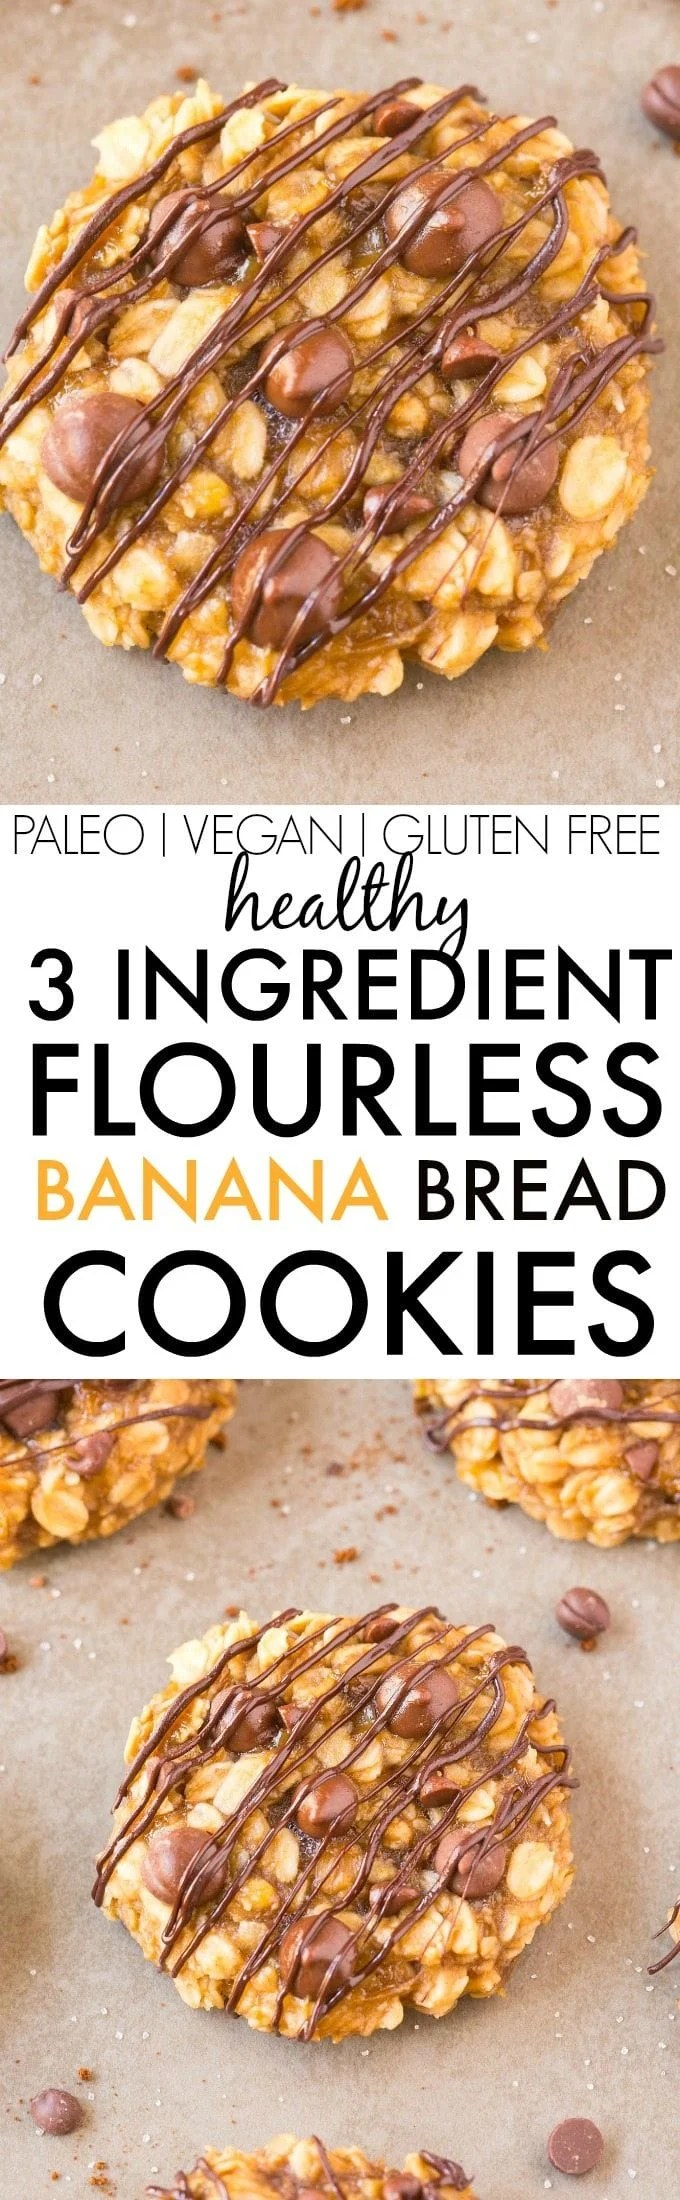 Healthy THREE Ingredient FLOURLESS Banana Bread Cookies- Thick, chewy and gooey banana bread cookies made with NO butter, NO oil and NO SUGAR- So easy and the perfect snack or dessert! {Vegan, gluten free recipe, paleo recipe option}- thebigmansworld.com